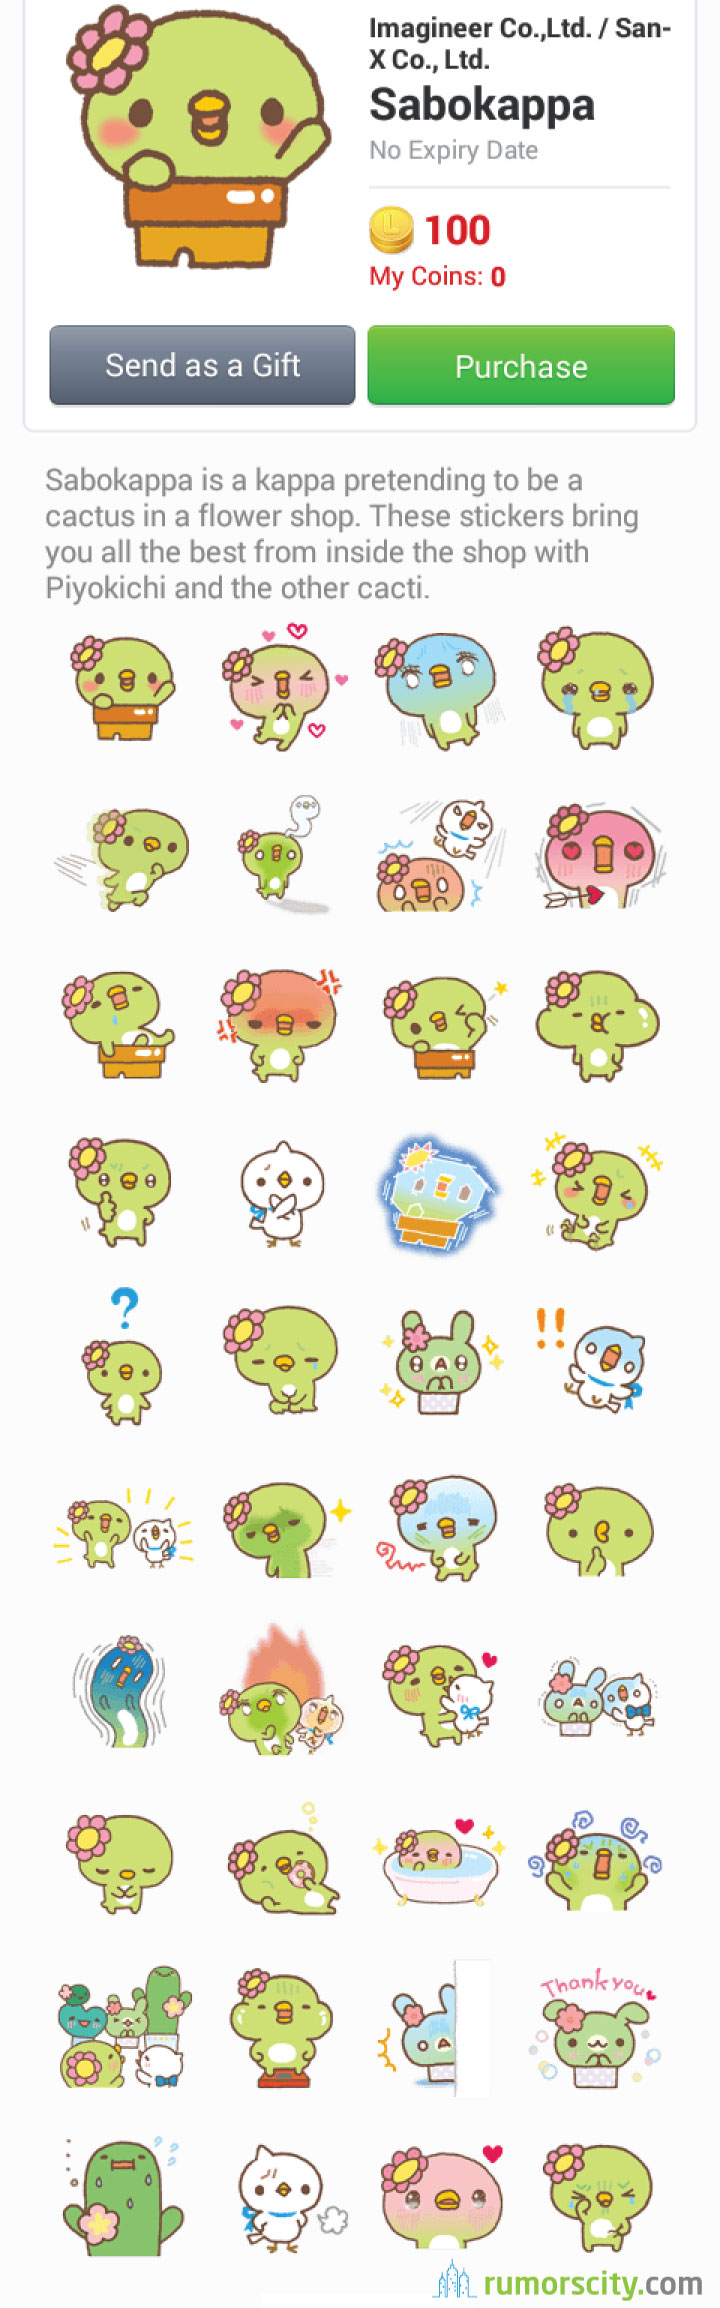 Sabokappa-Line-sticker-in-Thailand-Paid-02